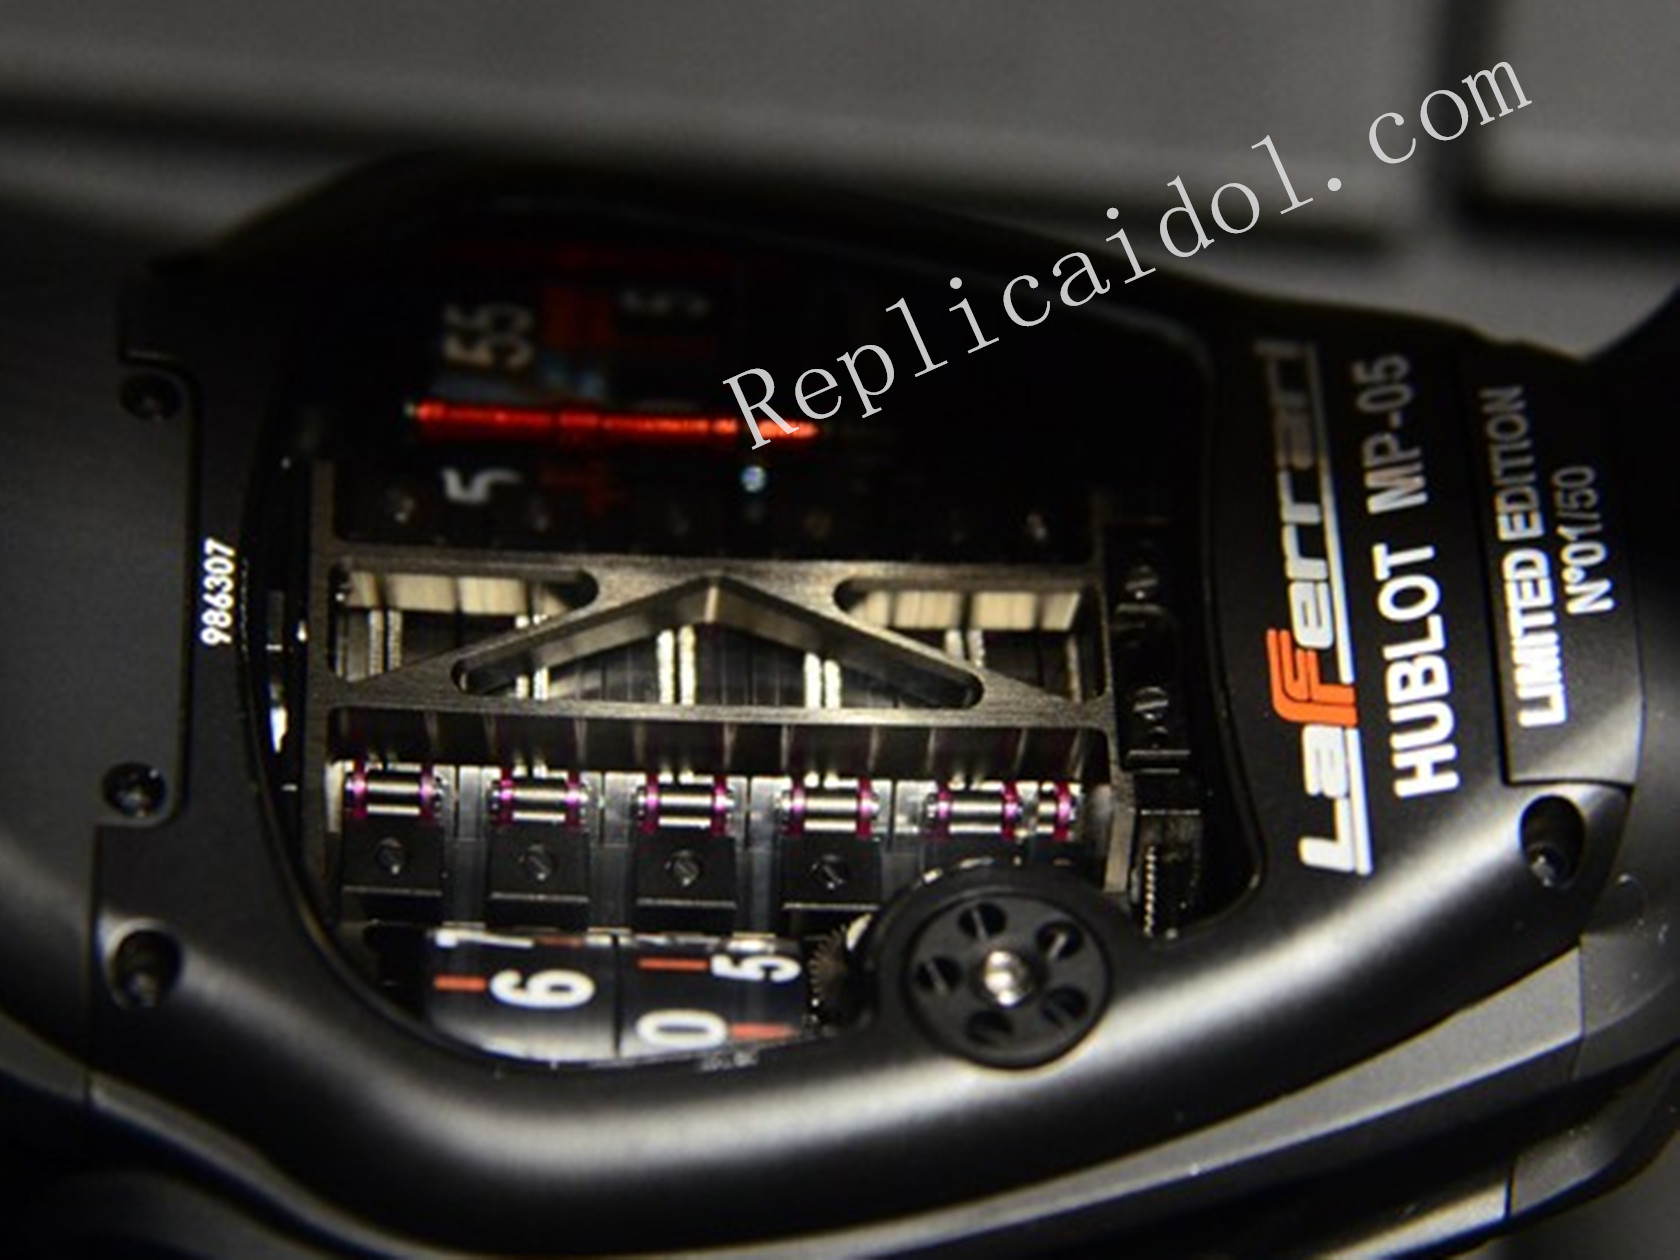 hublot laferrari replica for sale